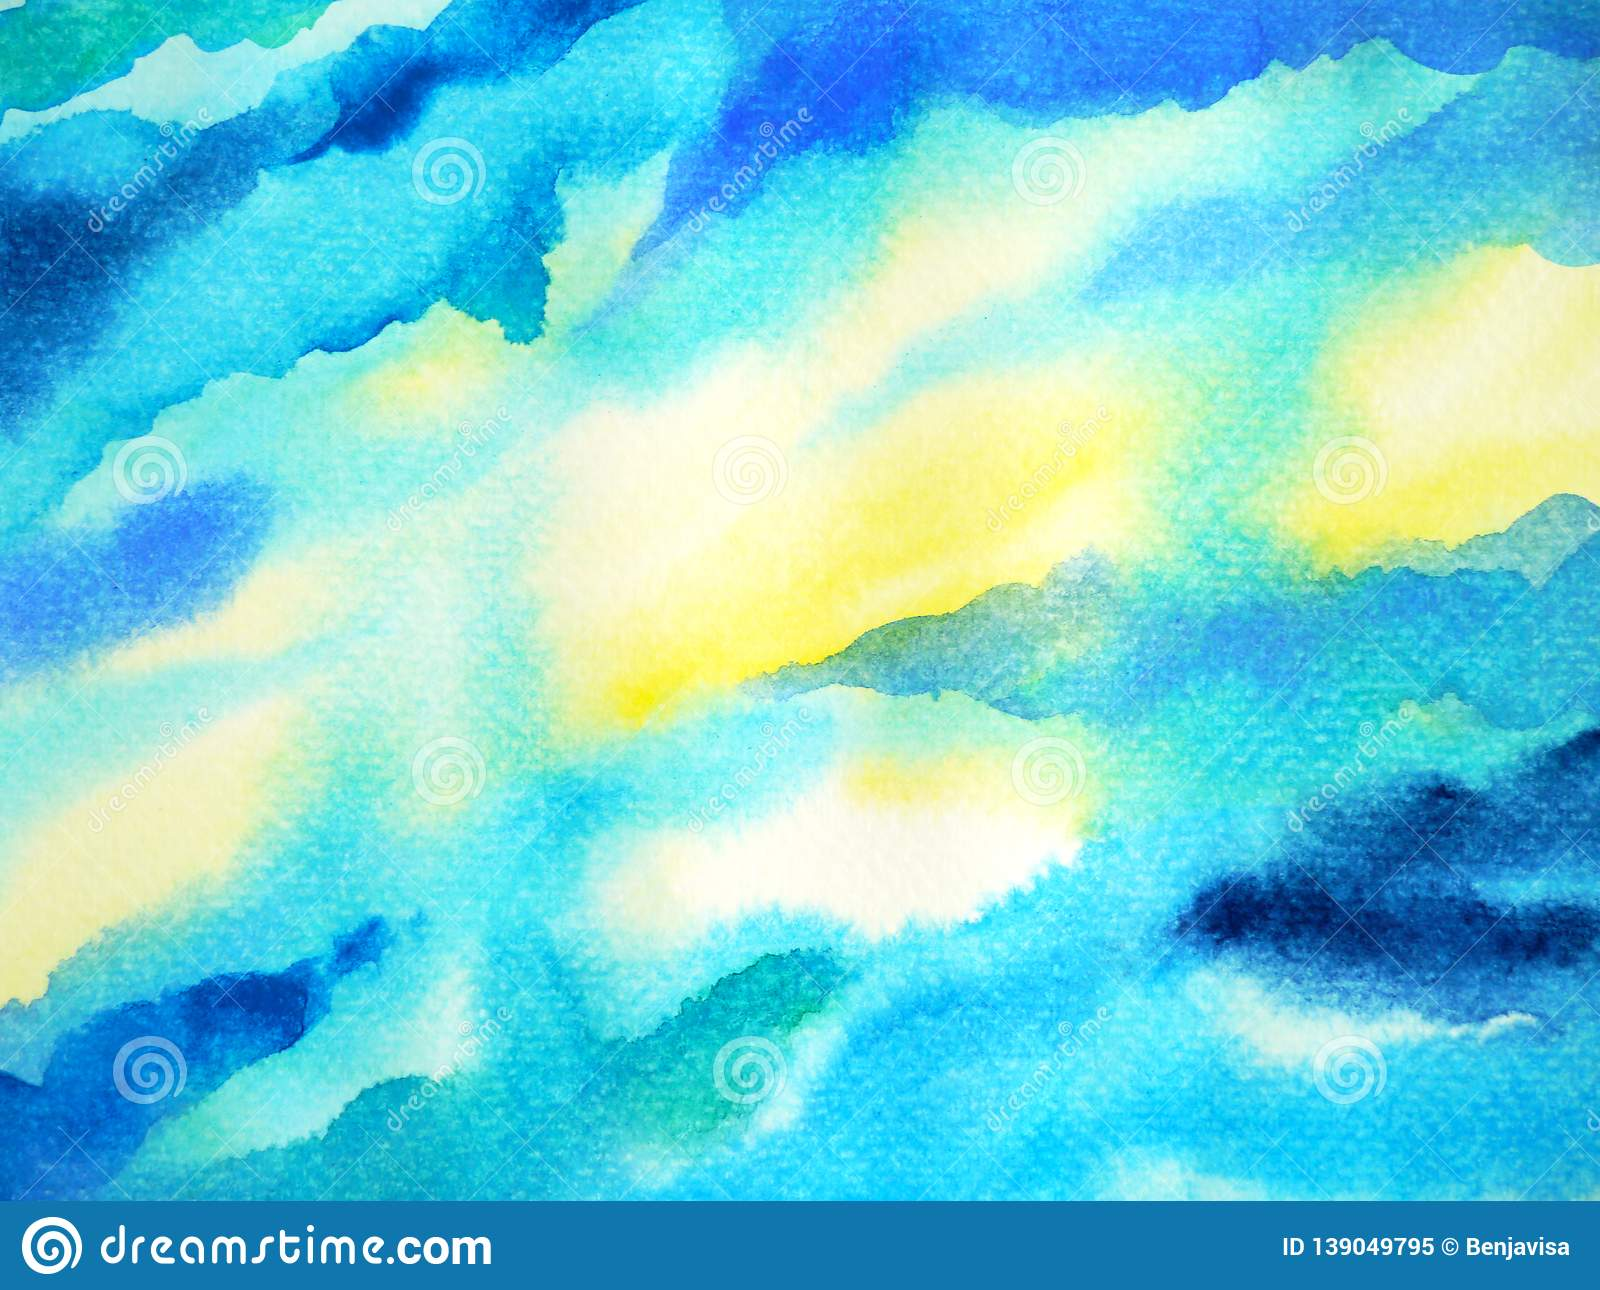 Abstract blue white color sky water sea ocean wave mountain range watercolor painting illustration design